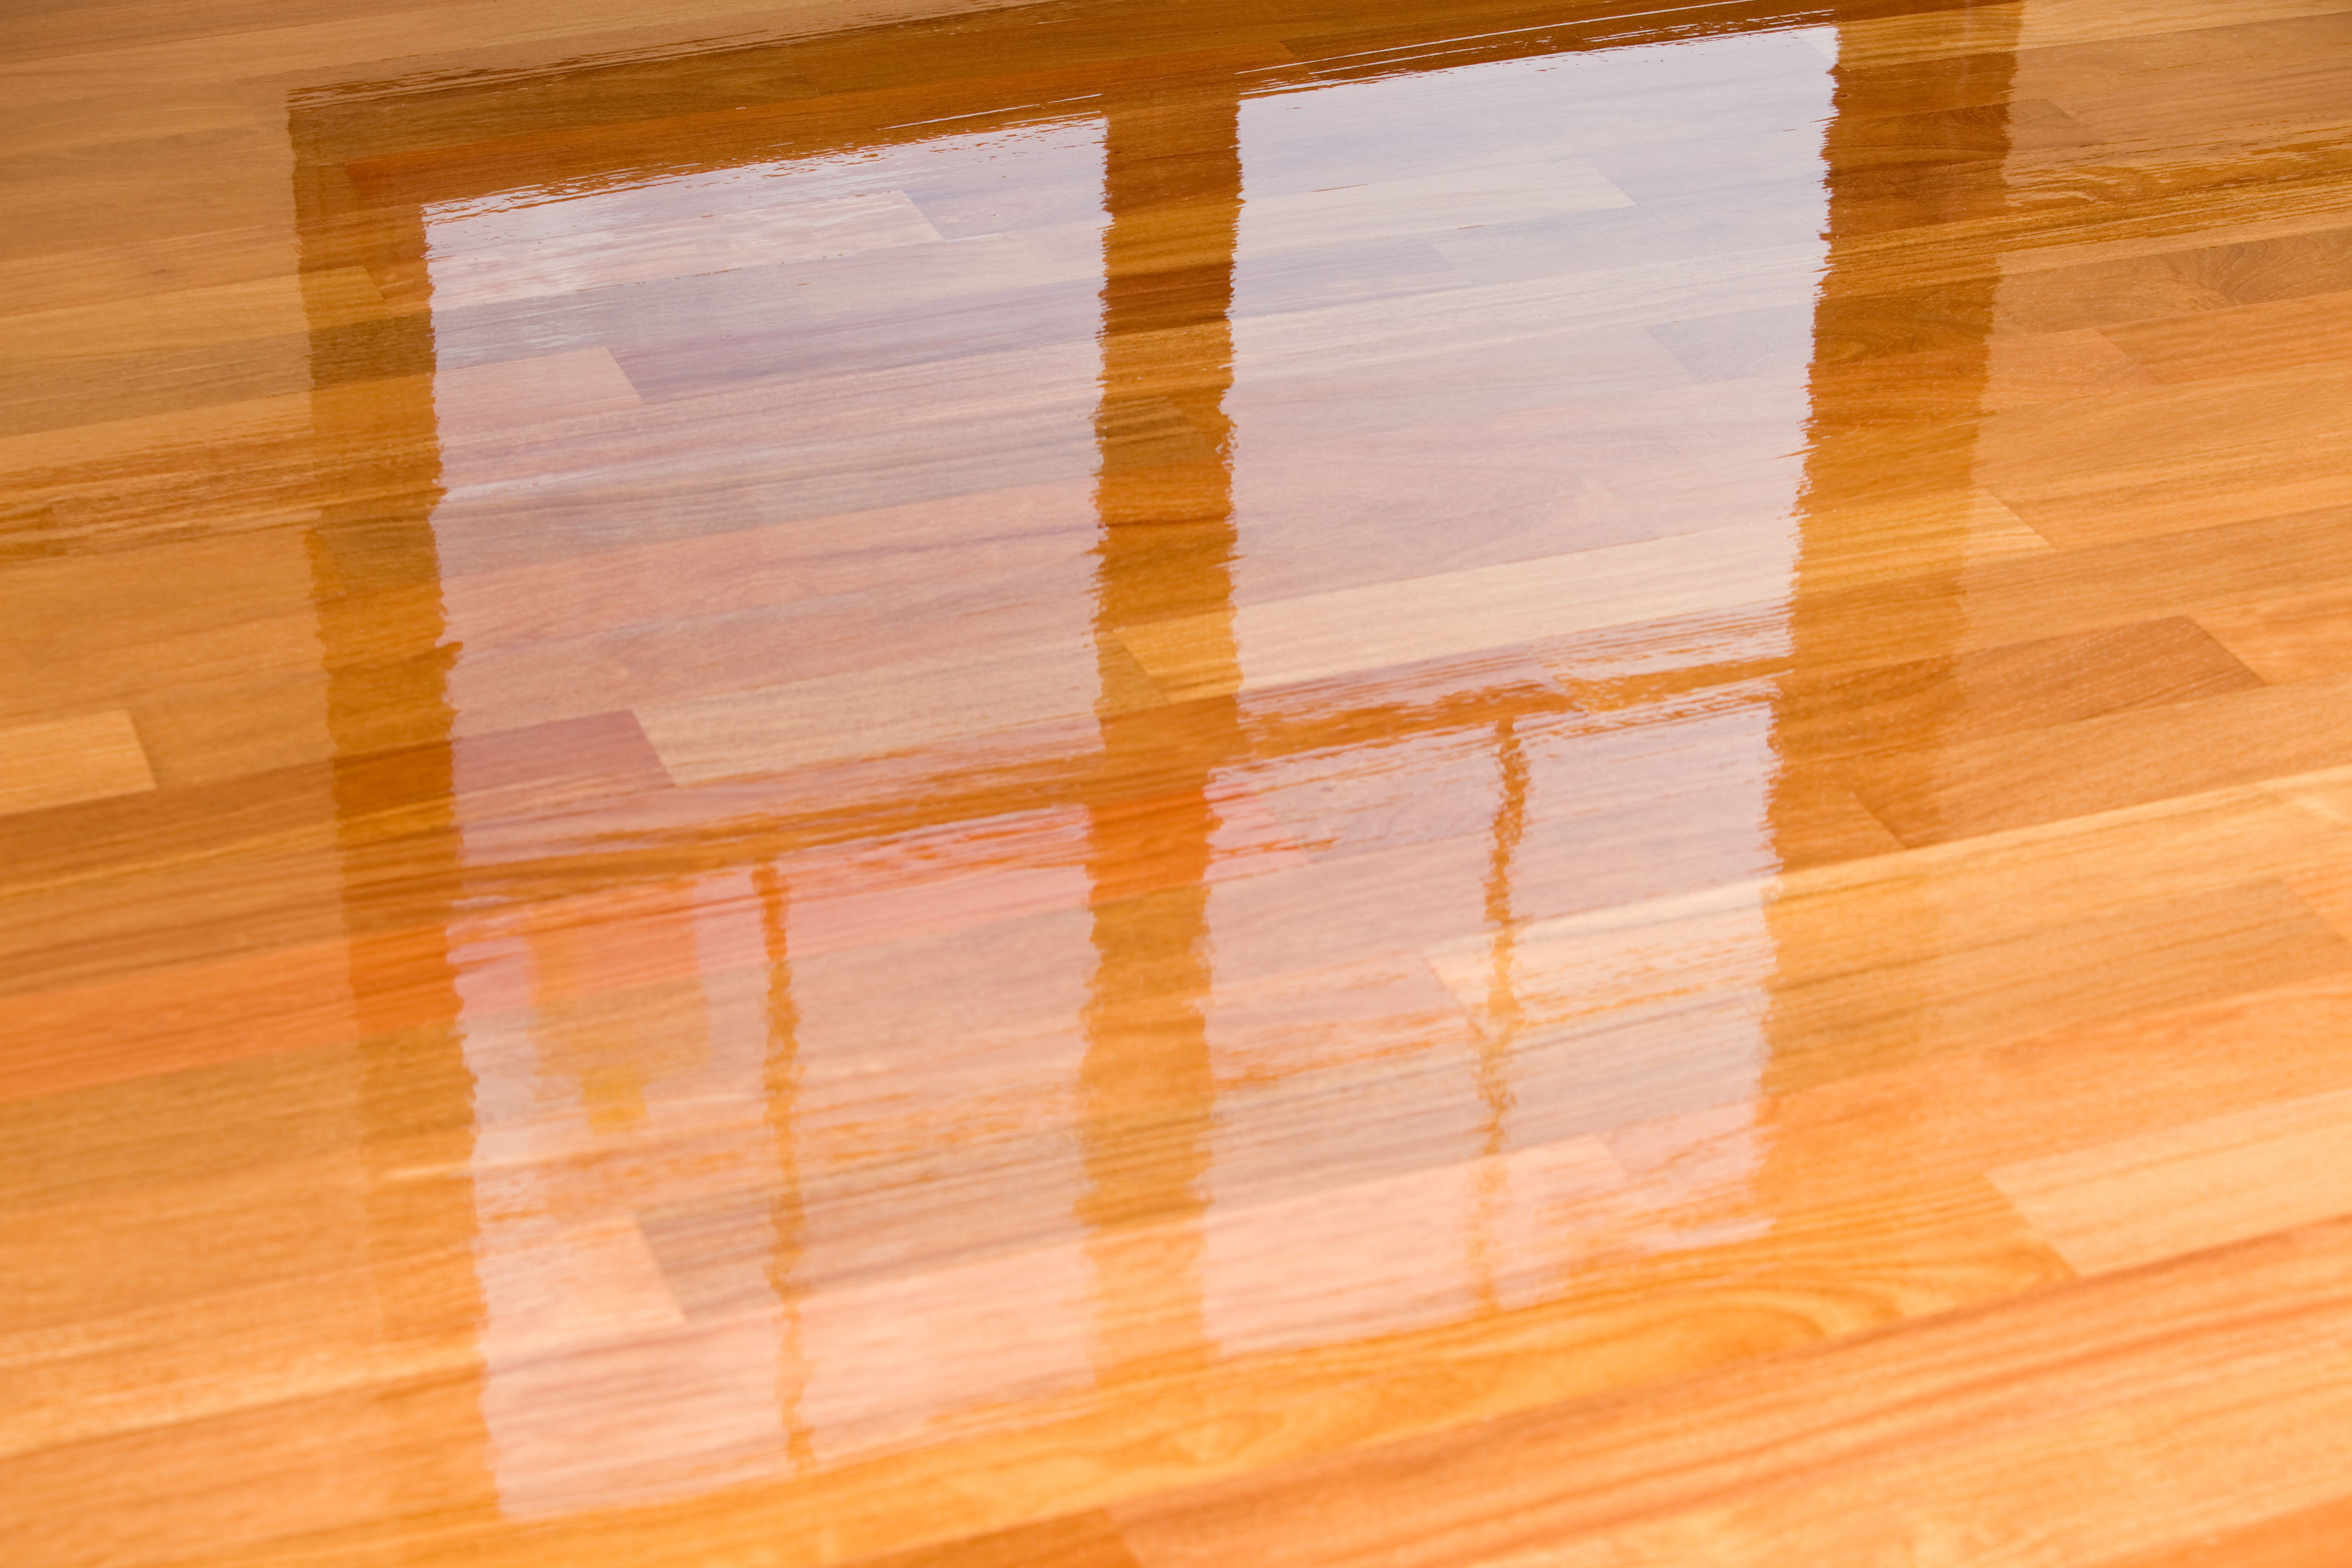 hardwood floor vacuum and mop of guide to laminate flooring water and damage repair with regard to wet polyurethane on new hardwood floor with window reflection 183846705 582e34da3df78c6f6a403968